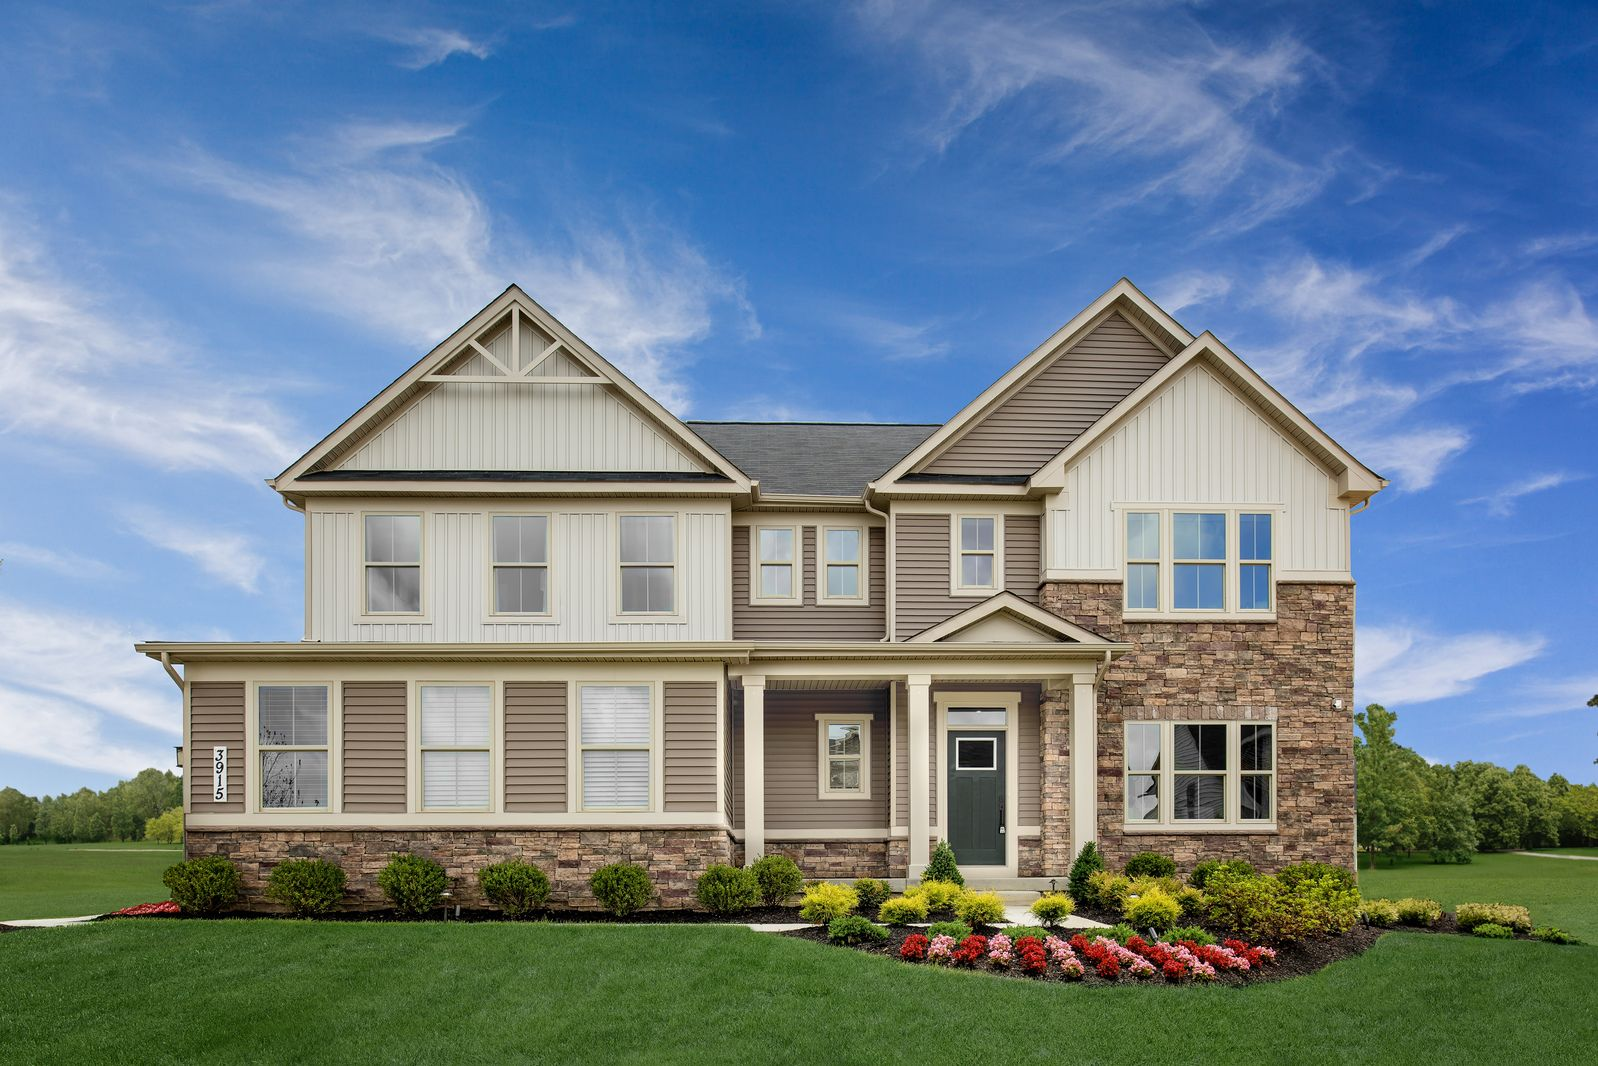 New Construction Homes In Cleveland Oh 844 Homes